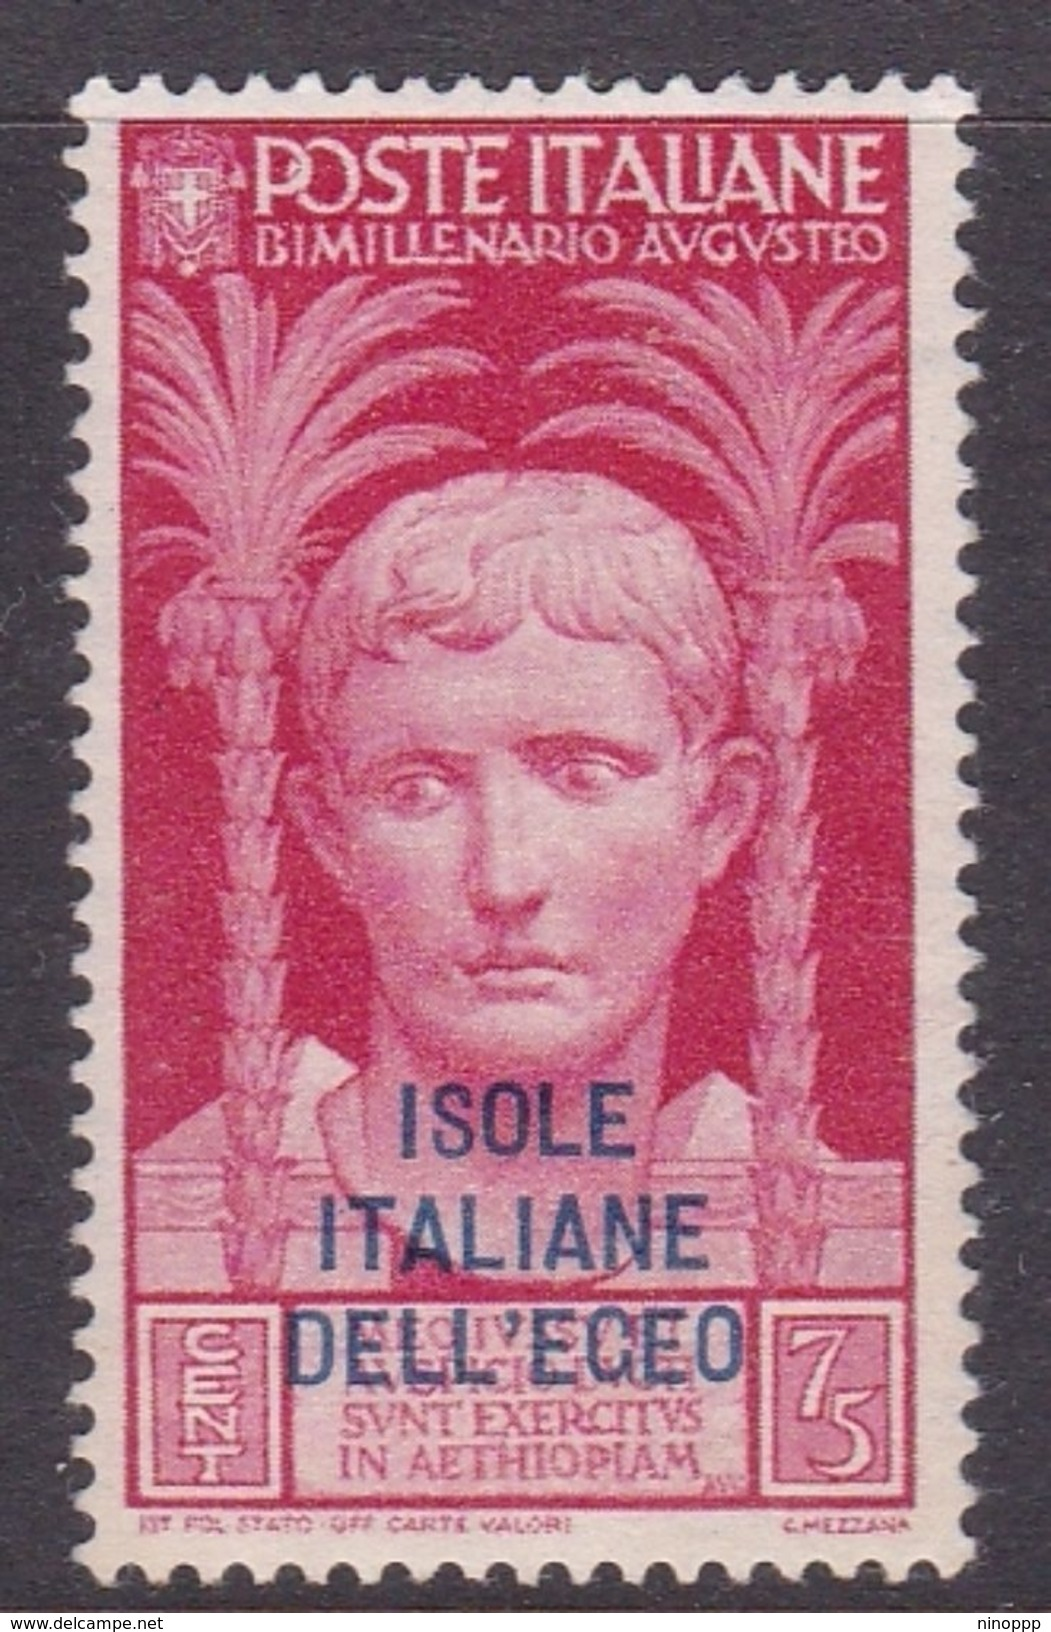 Italy-Colonies And Territories-Aegean General Issue-Rodi S105 1938 Augustus 75c Red MH - Italy